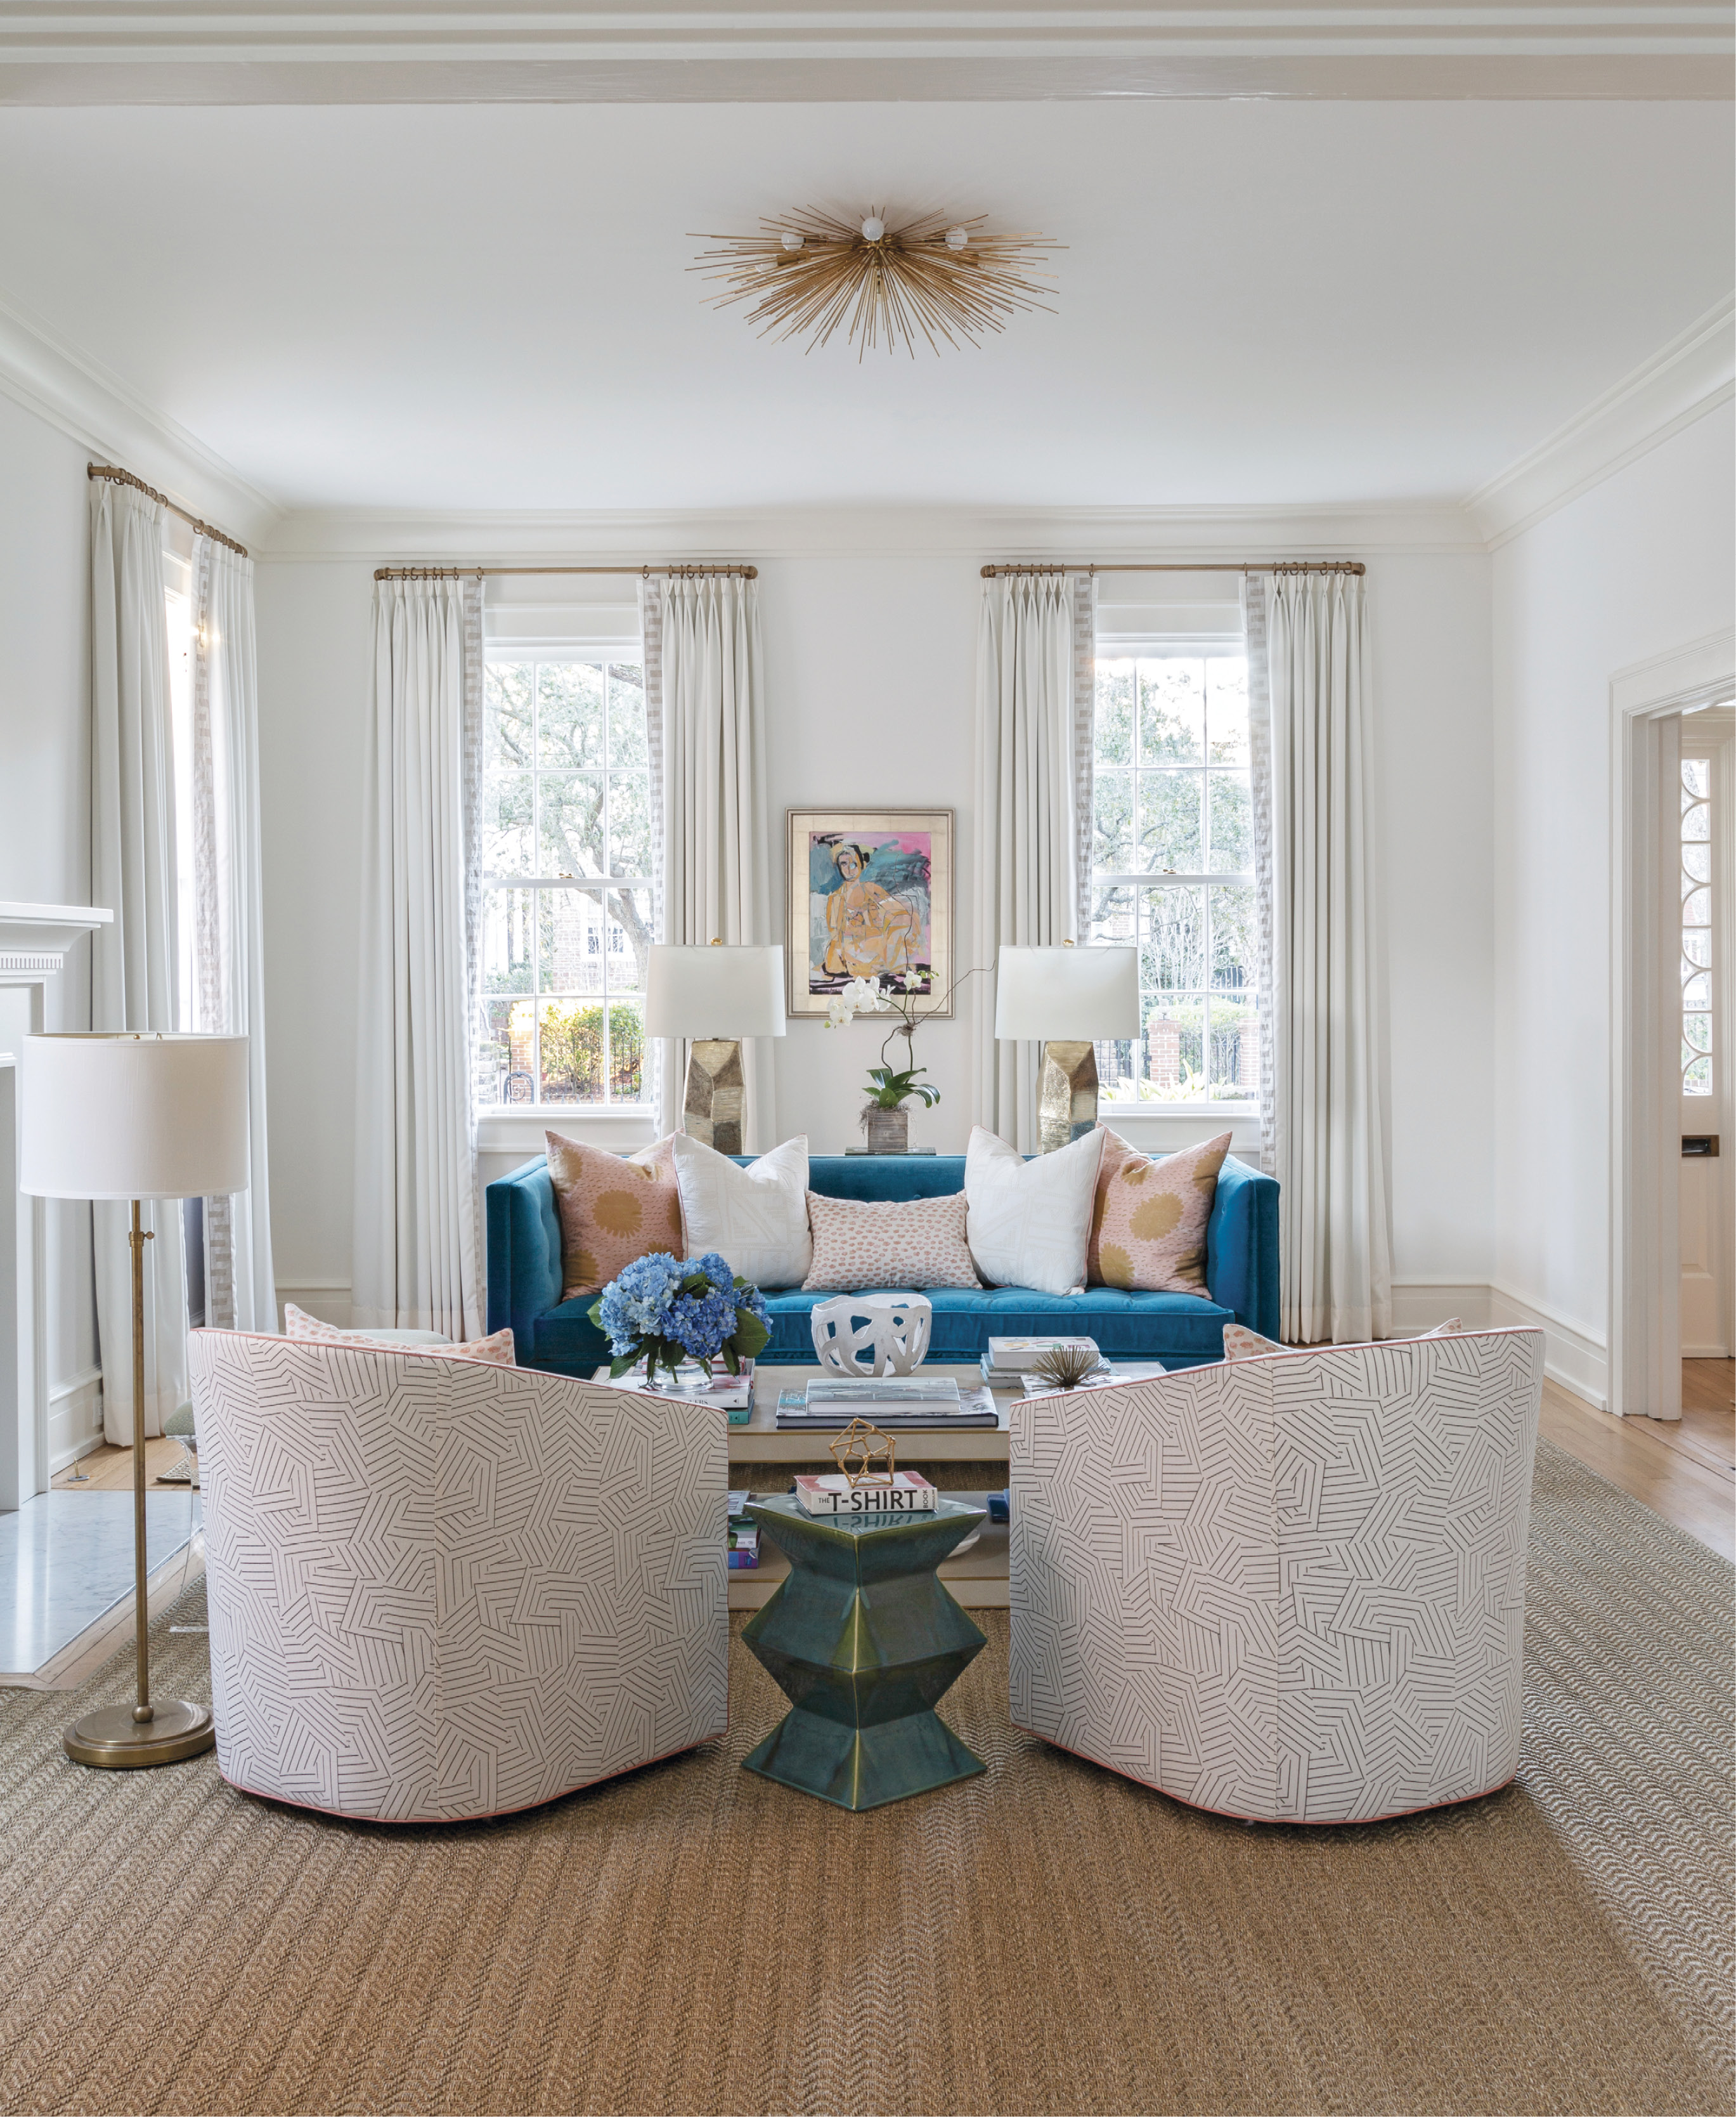 SITTING PRETTY: Cate's art collection set the palettes for the interiors, including this striking figurative work by Anne Darby Parker overlooking a vibrant blue Jonathan Adler velvet sofa and pale blush of the Schumacher fabric-covered club chairs.